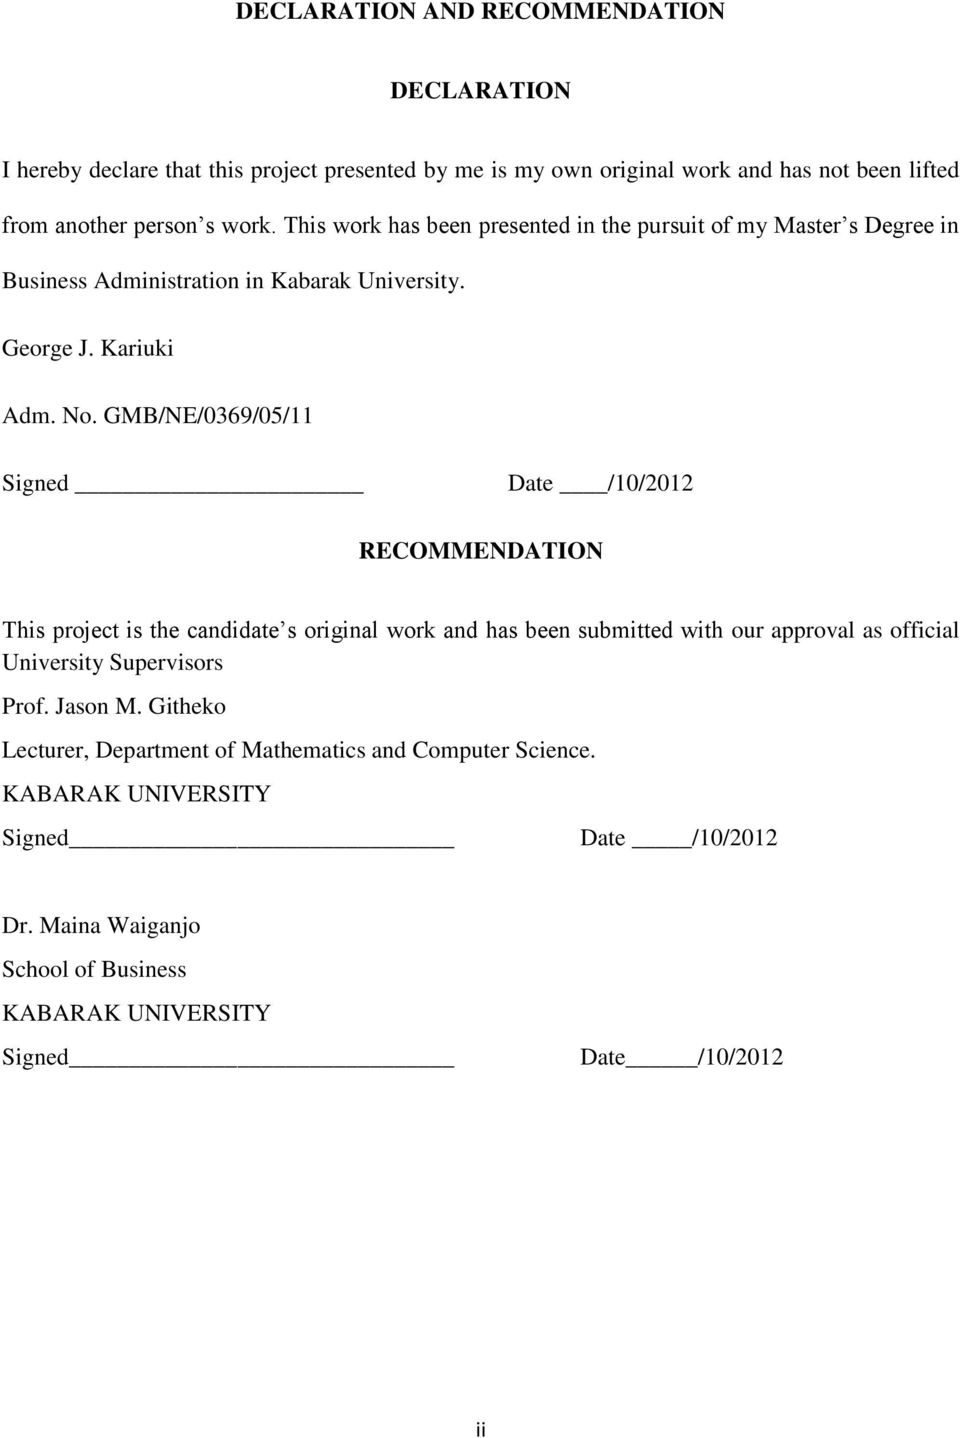 GMB/NE/0369/05/11 Signed Date /10/2012 RECOMMENDATION This project is the candidate s original work and has been submitted with our approval as official University